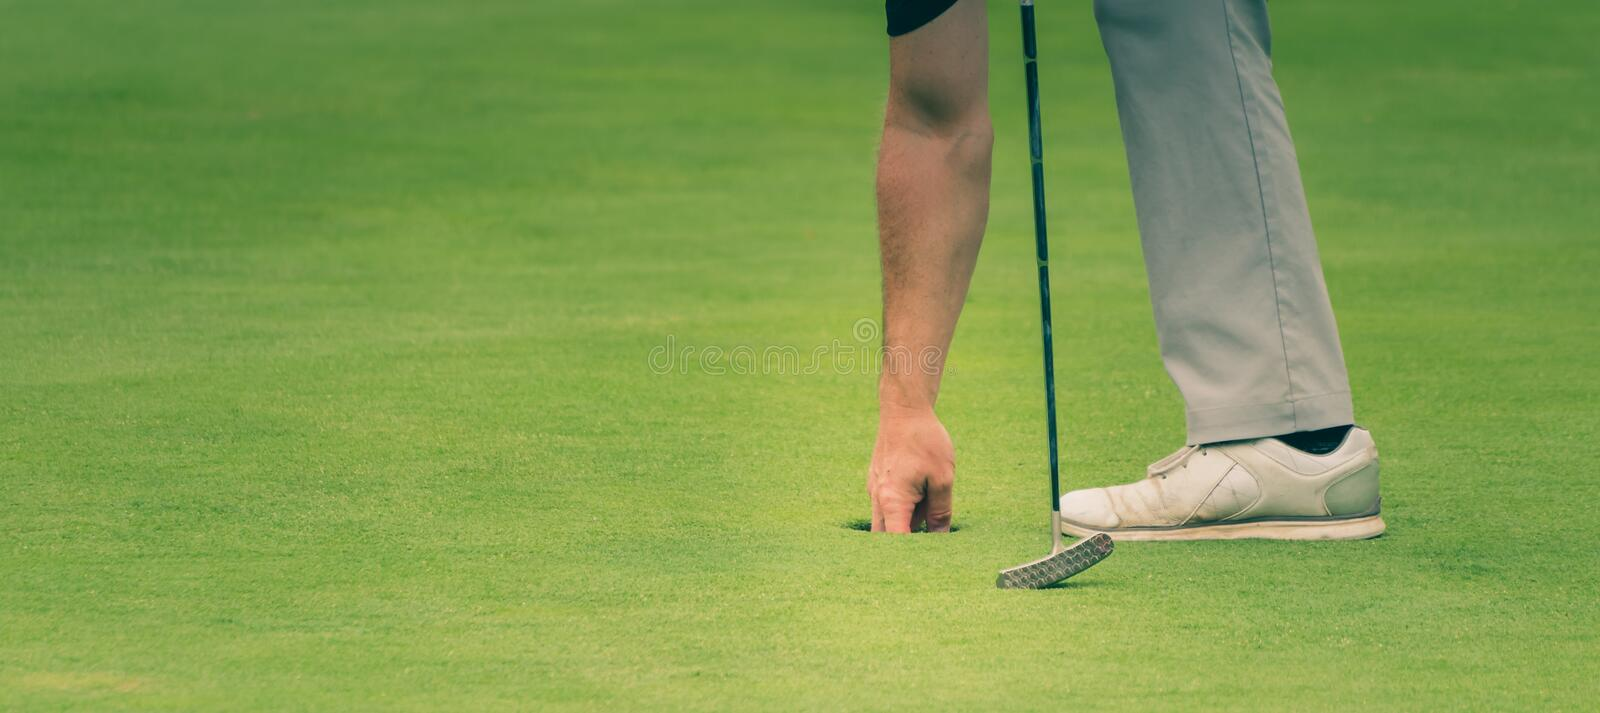 Golfer is taking the ball out of the hole royalty free stock photography